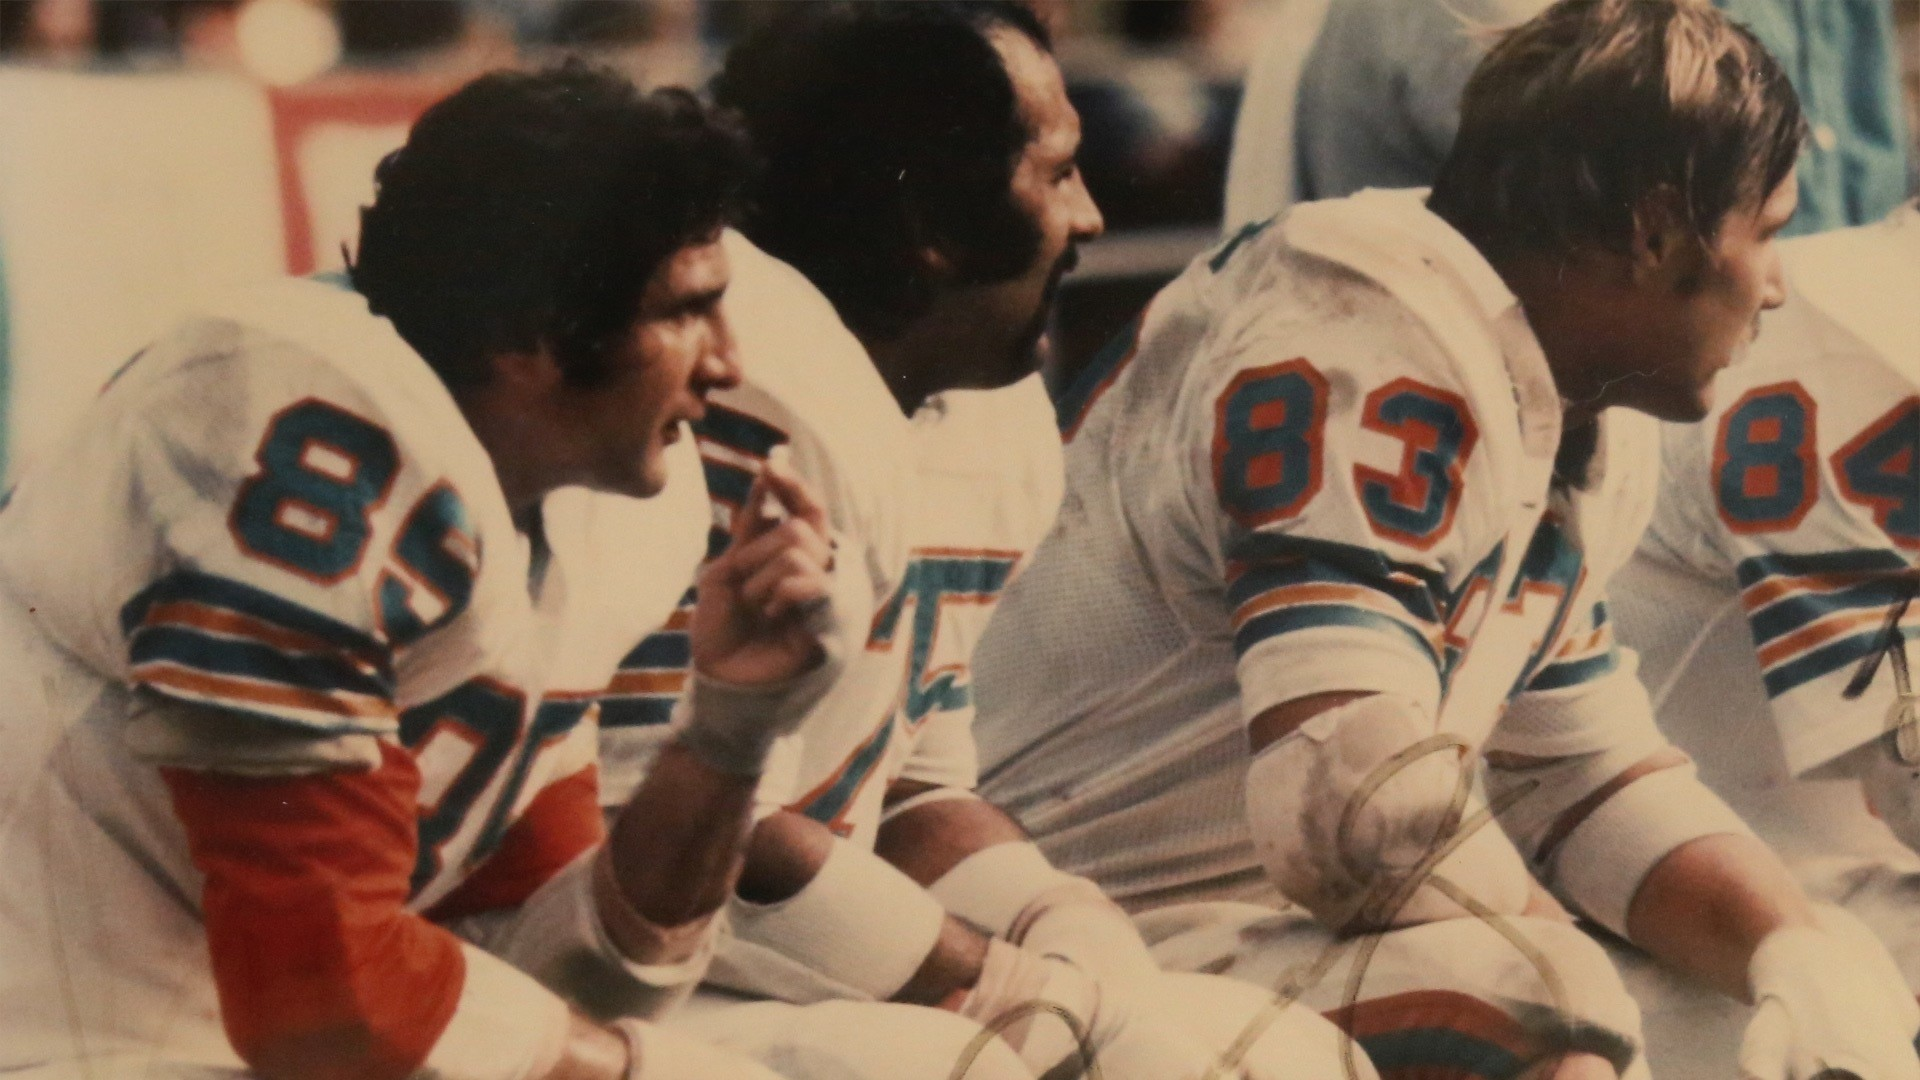 Os-sp-dolphins-nick-buoniconti-family-0513